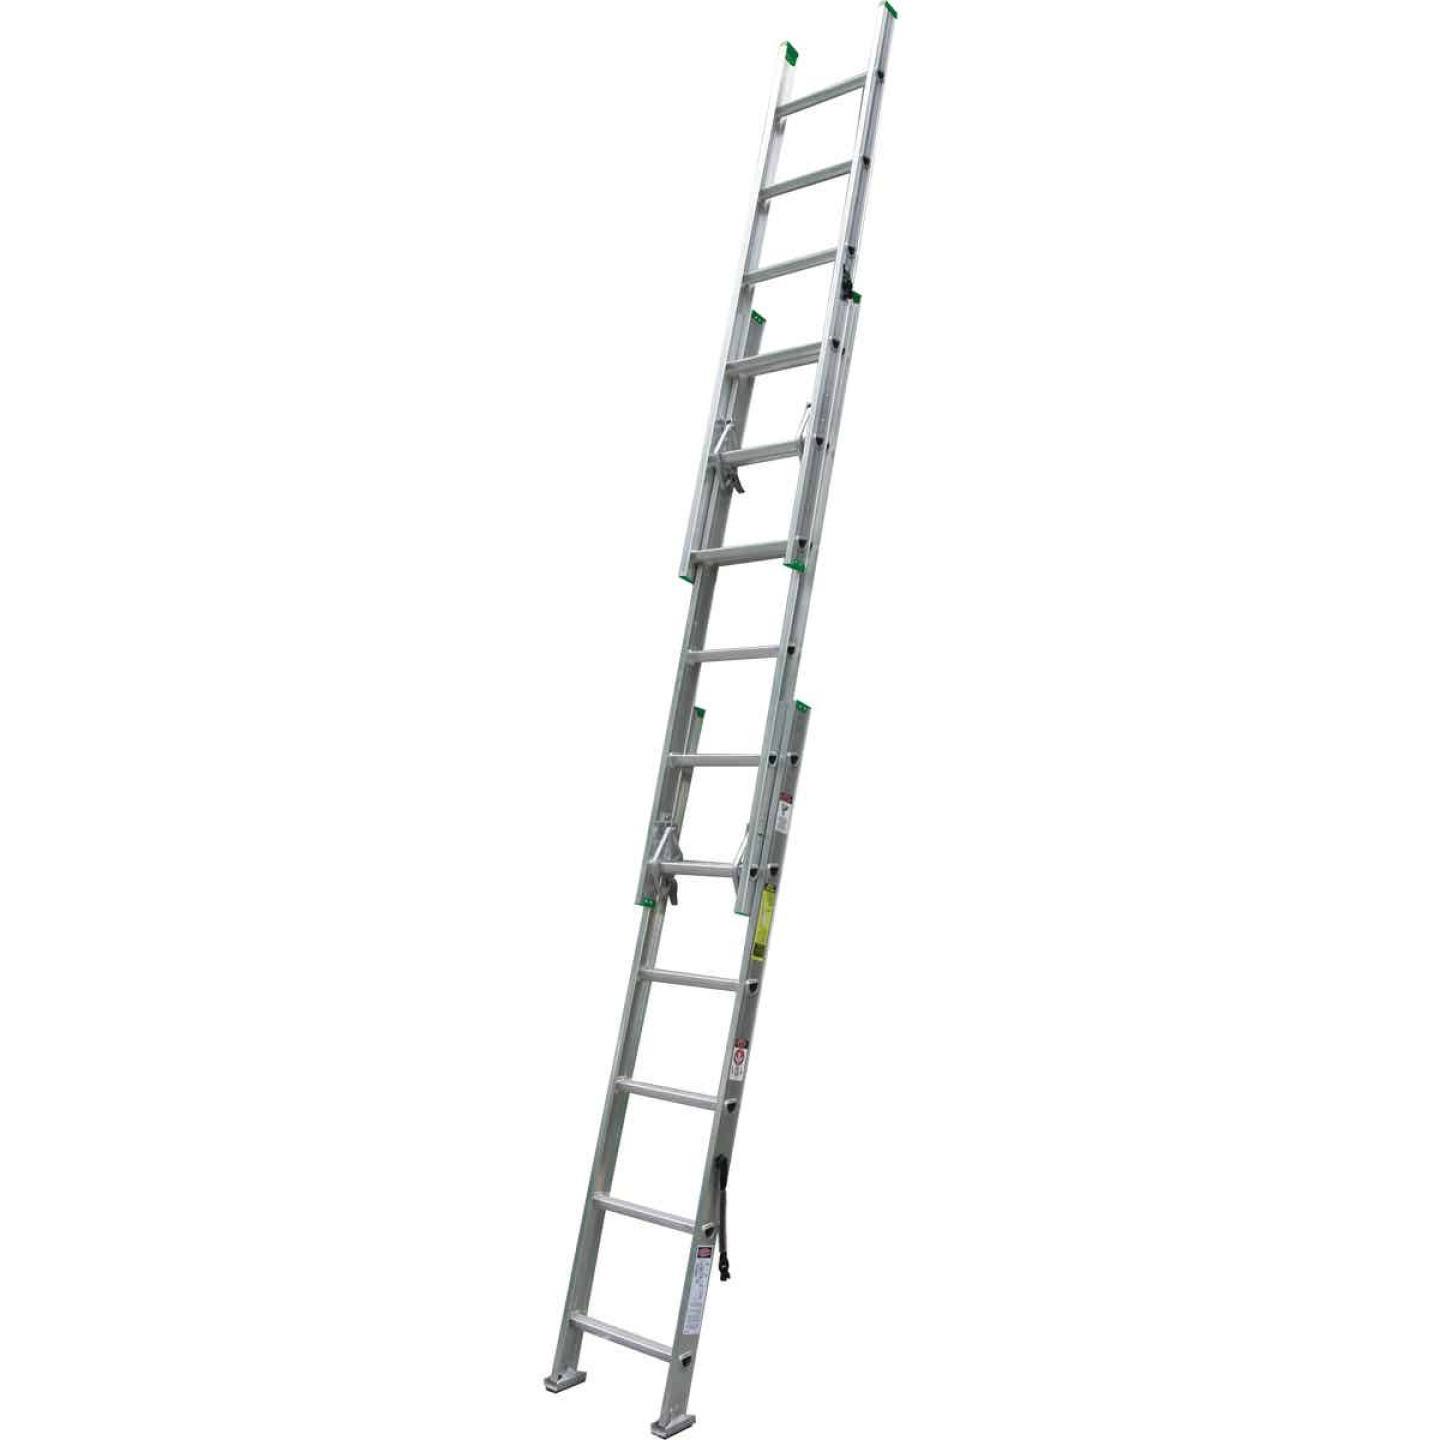 Werner 16 Ft. Compact Aluminum Extension Ladder with 225 Lb. Load Capacity Type II Duty Rating Image 1